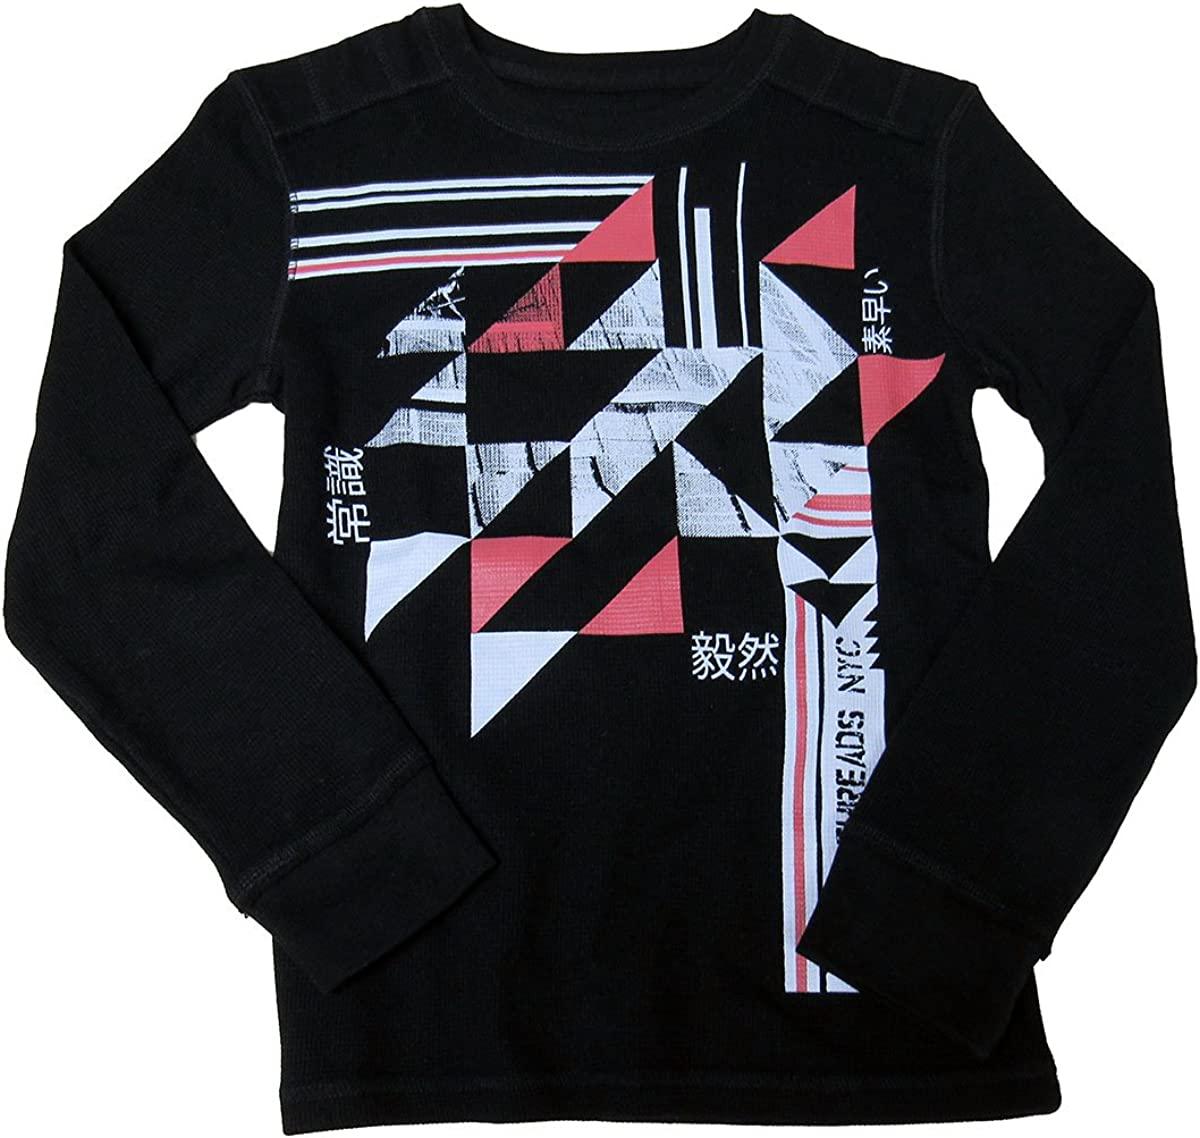 Epic Threads Boys' Long-Sleeve Graphic-Print Thermal T-Shirt